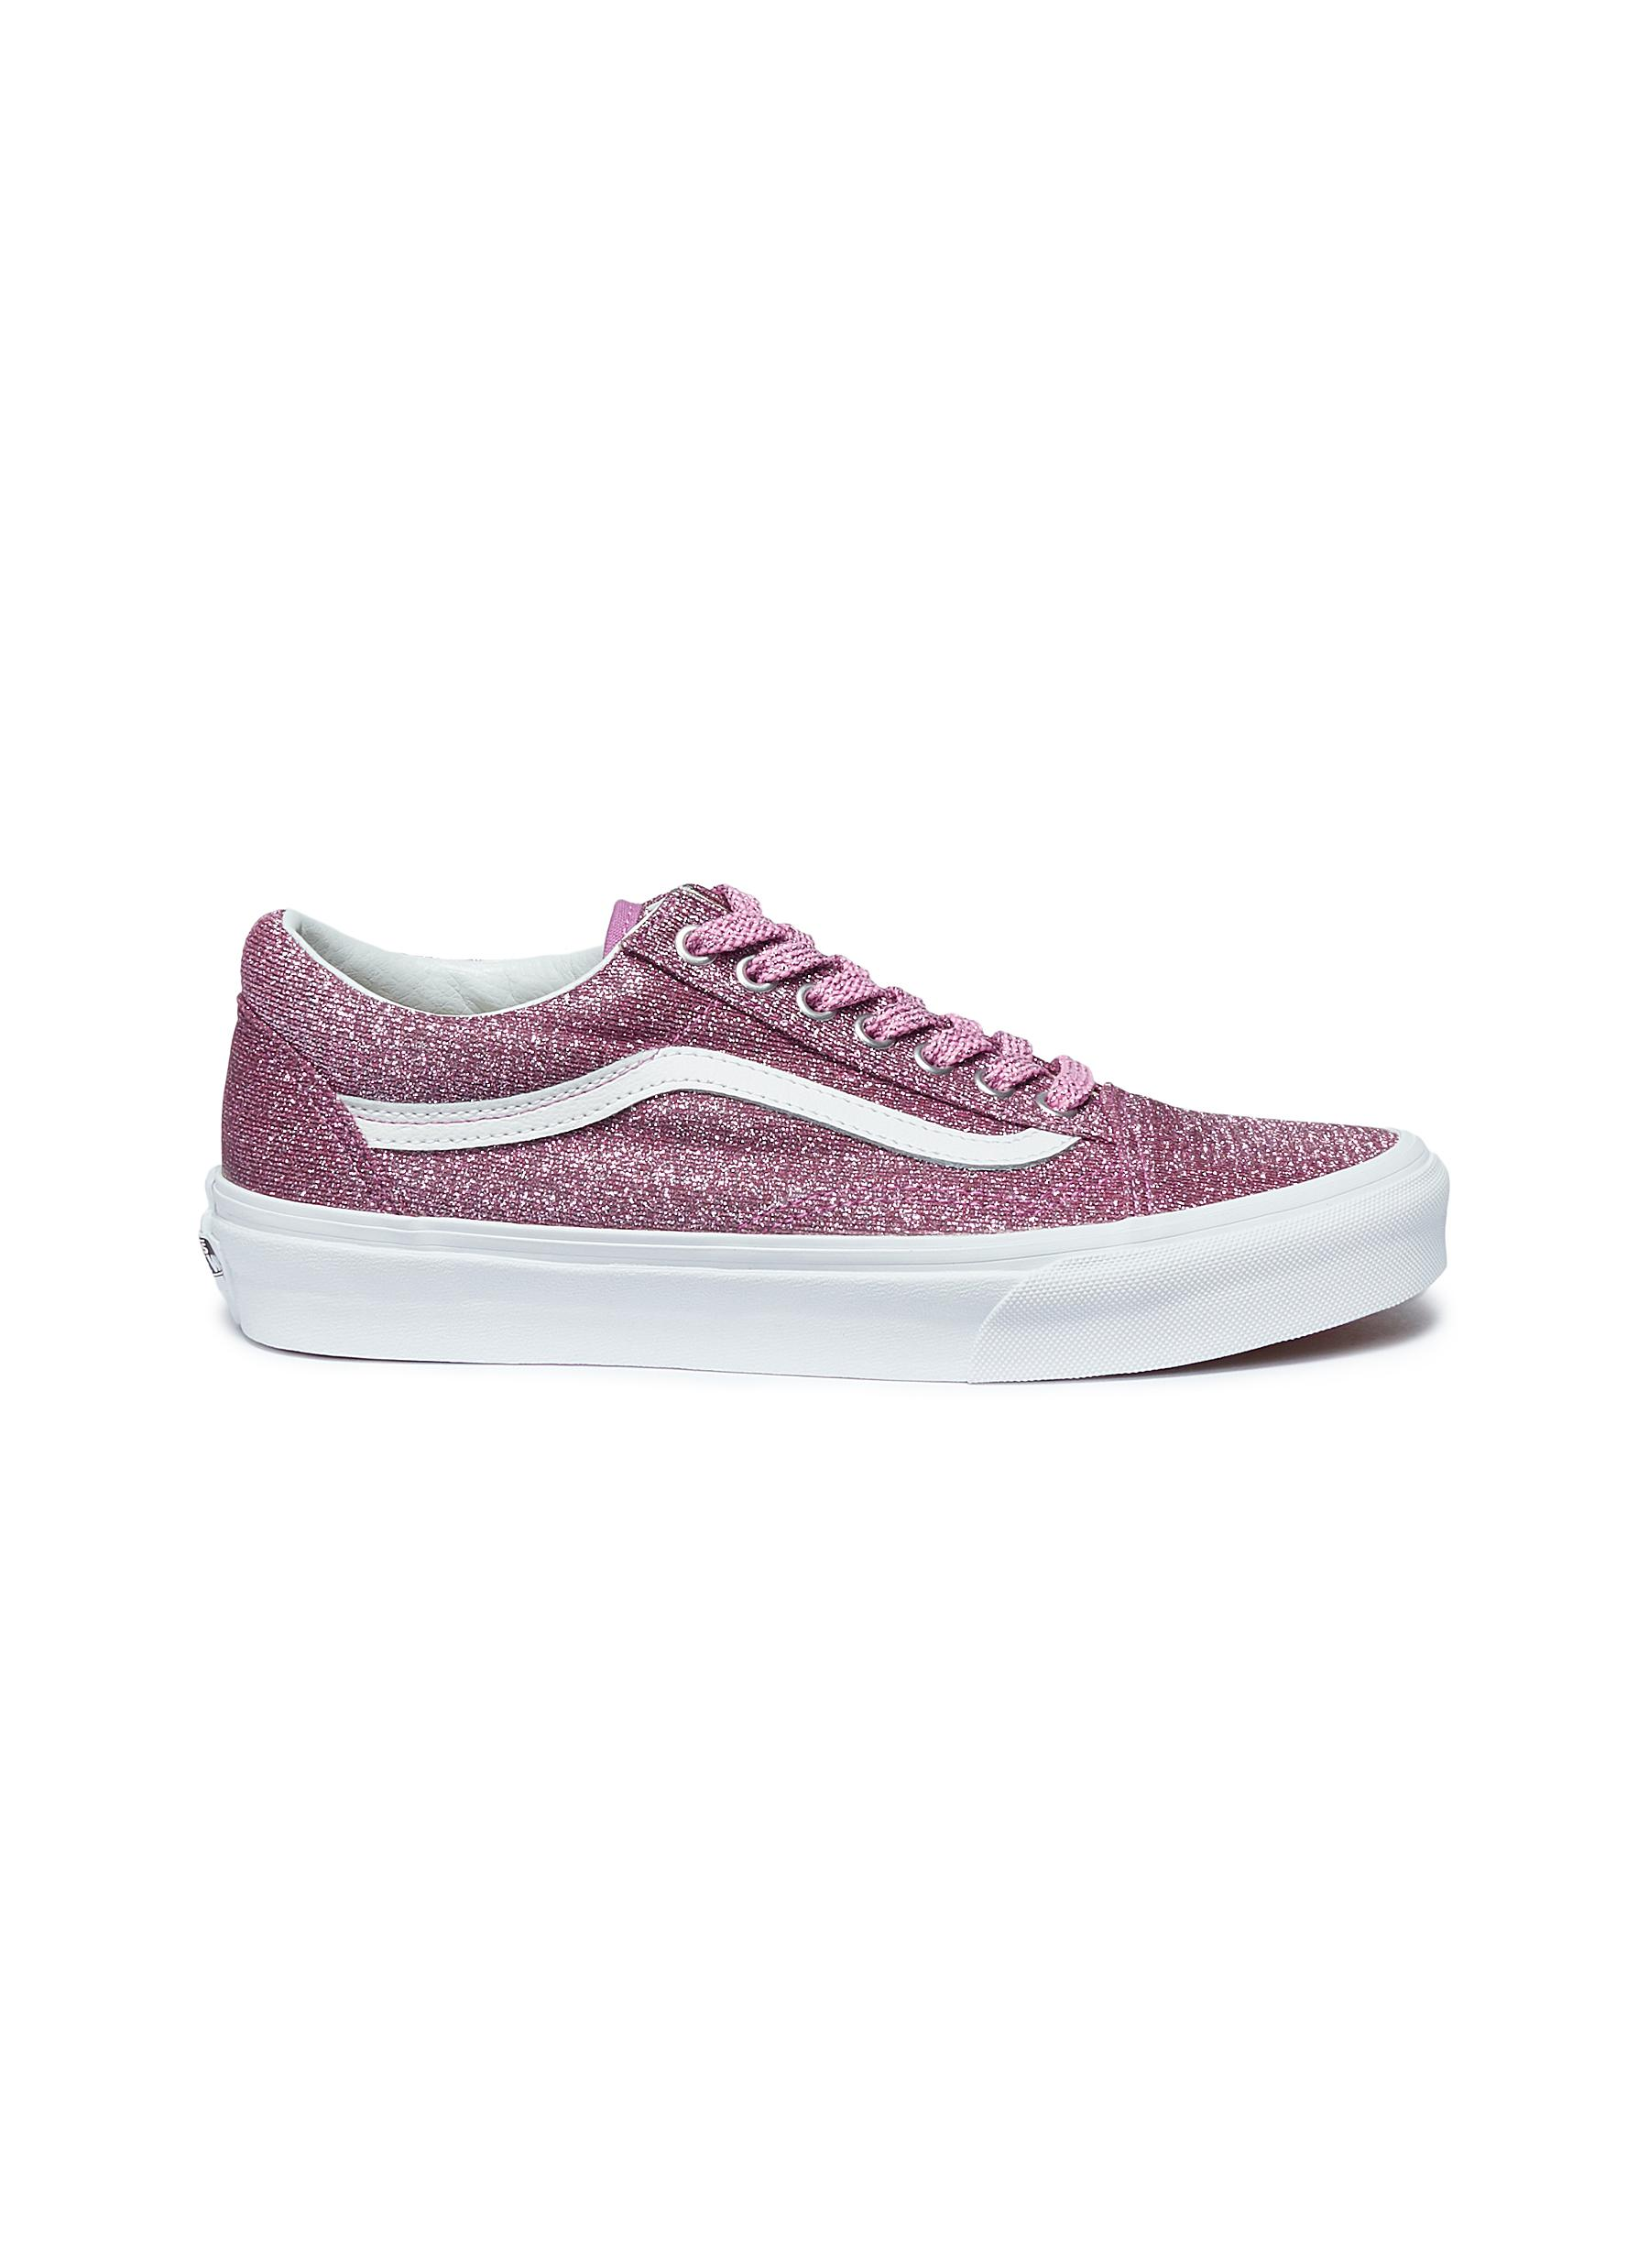 Main View - Click To Enlarge - Vans -  Lurex Glitter Old Skool  sneakers ecb8eb0a4